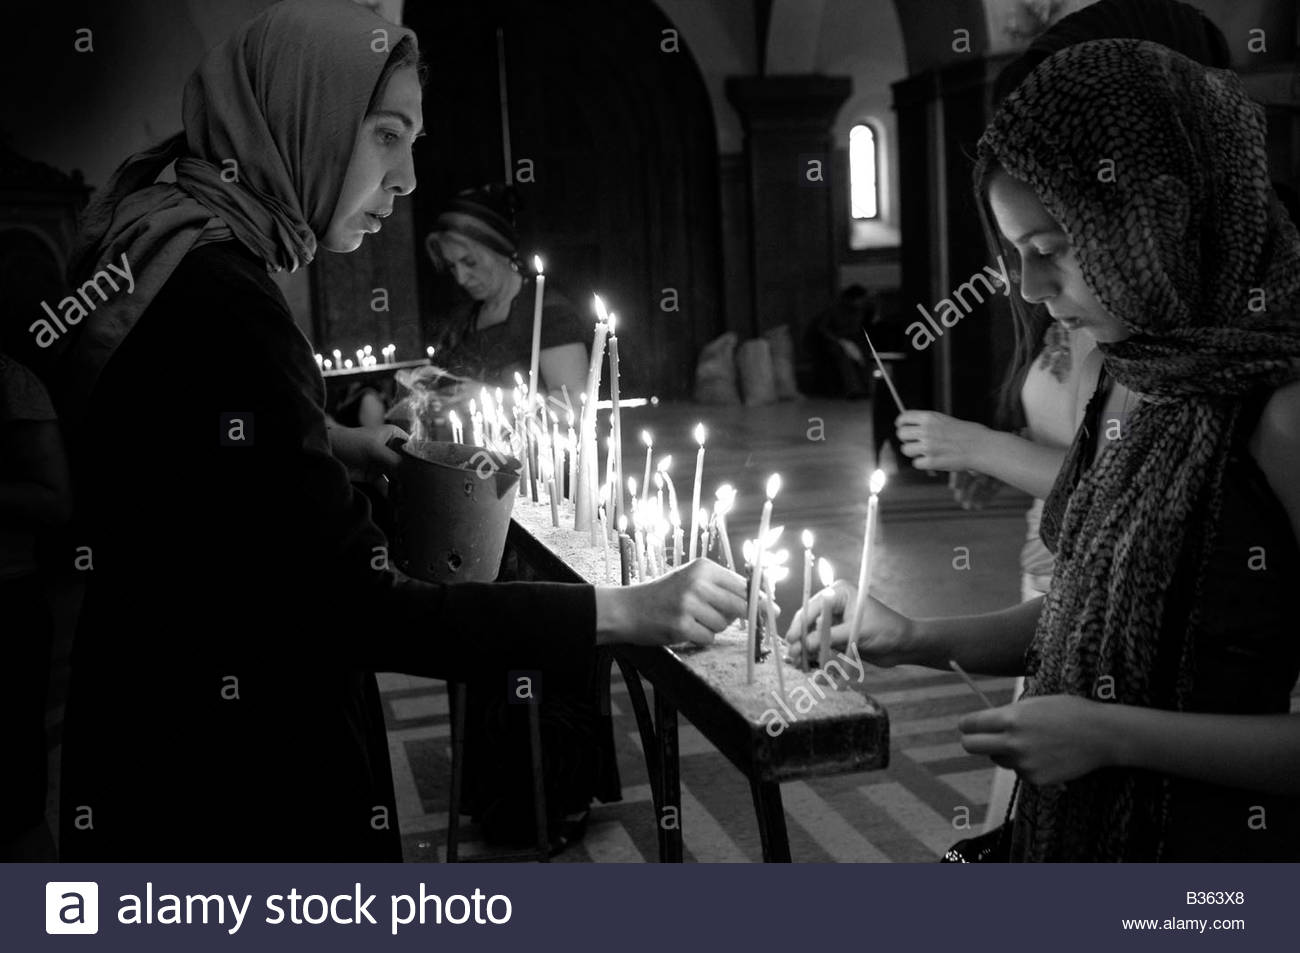 Locals lighting candles The Holy Trinity Cathedral commonly known as The Sameba cathedral in Tbilisi, Republic of - Stock Image